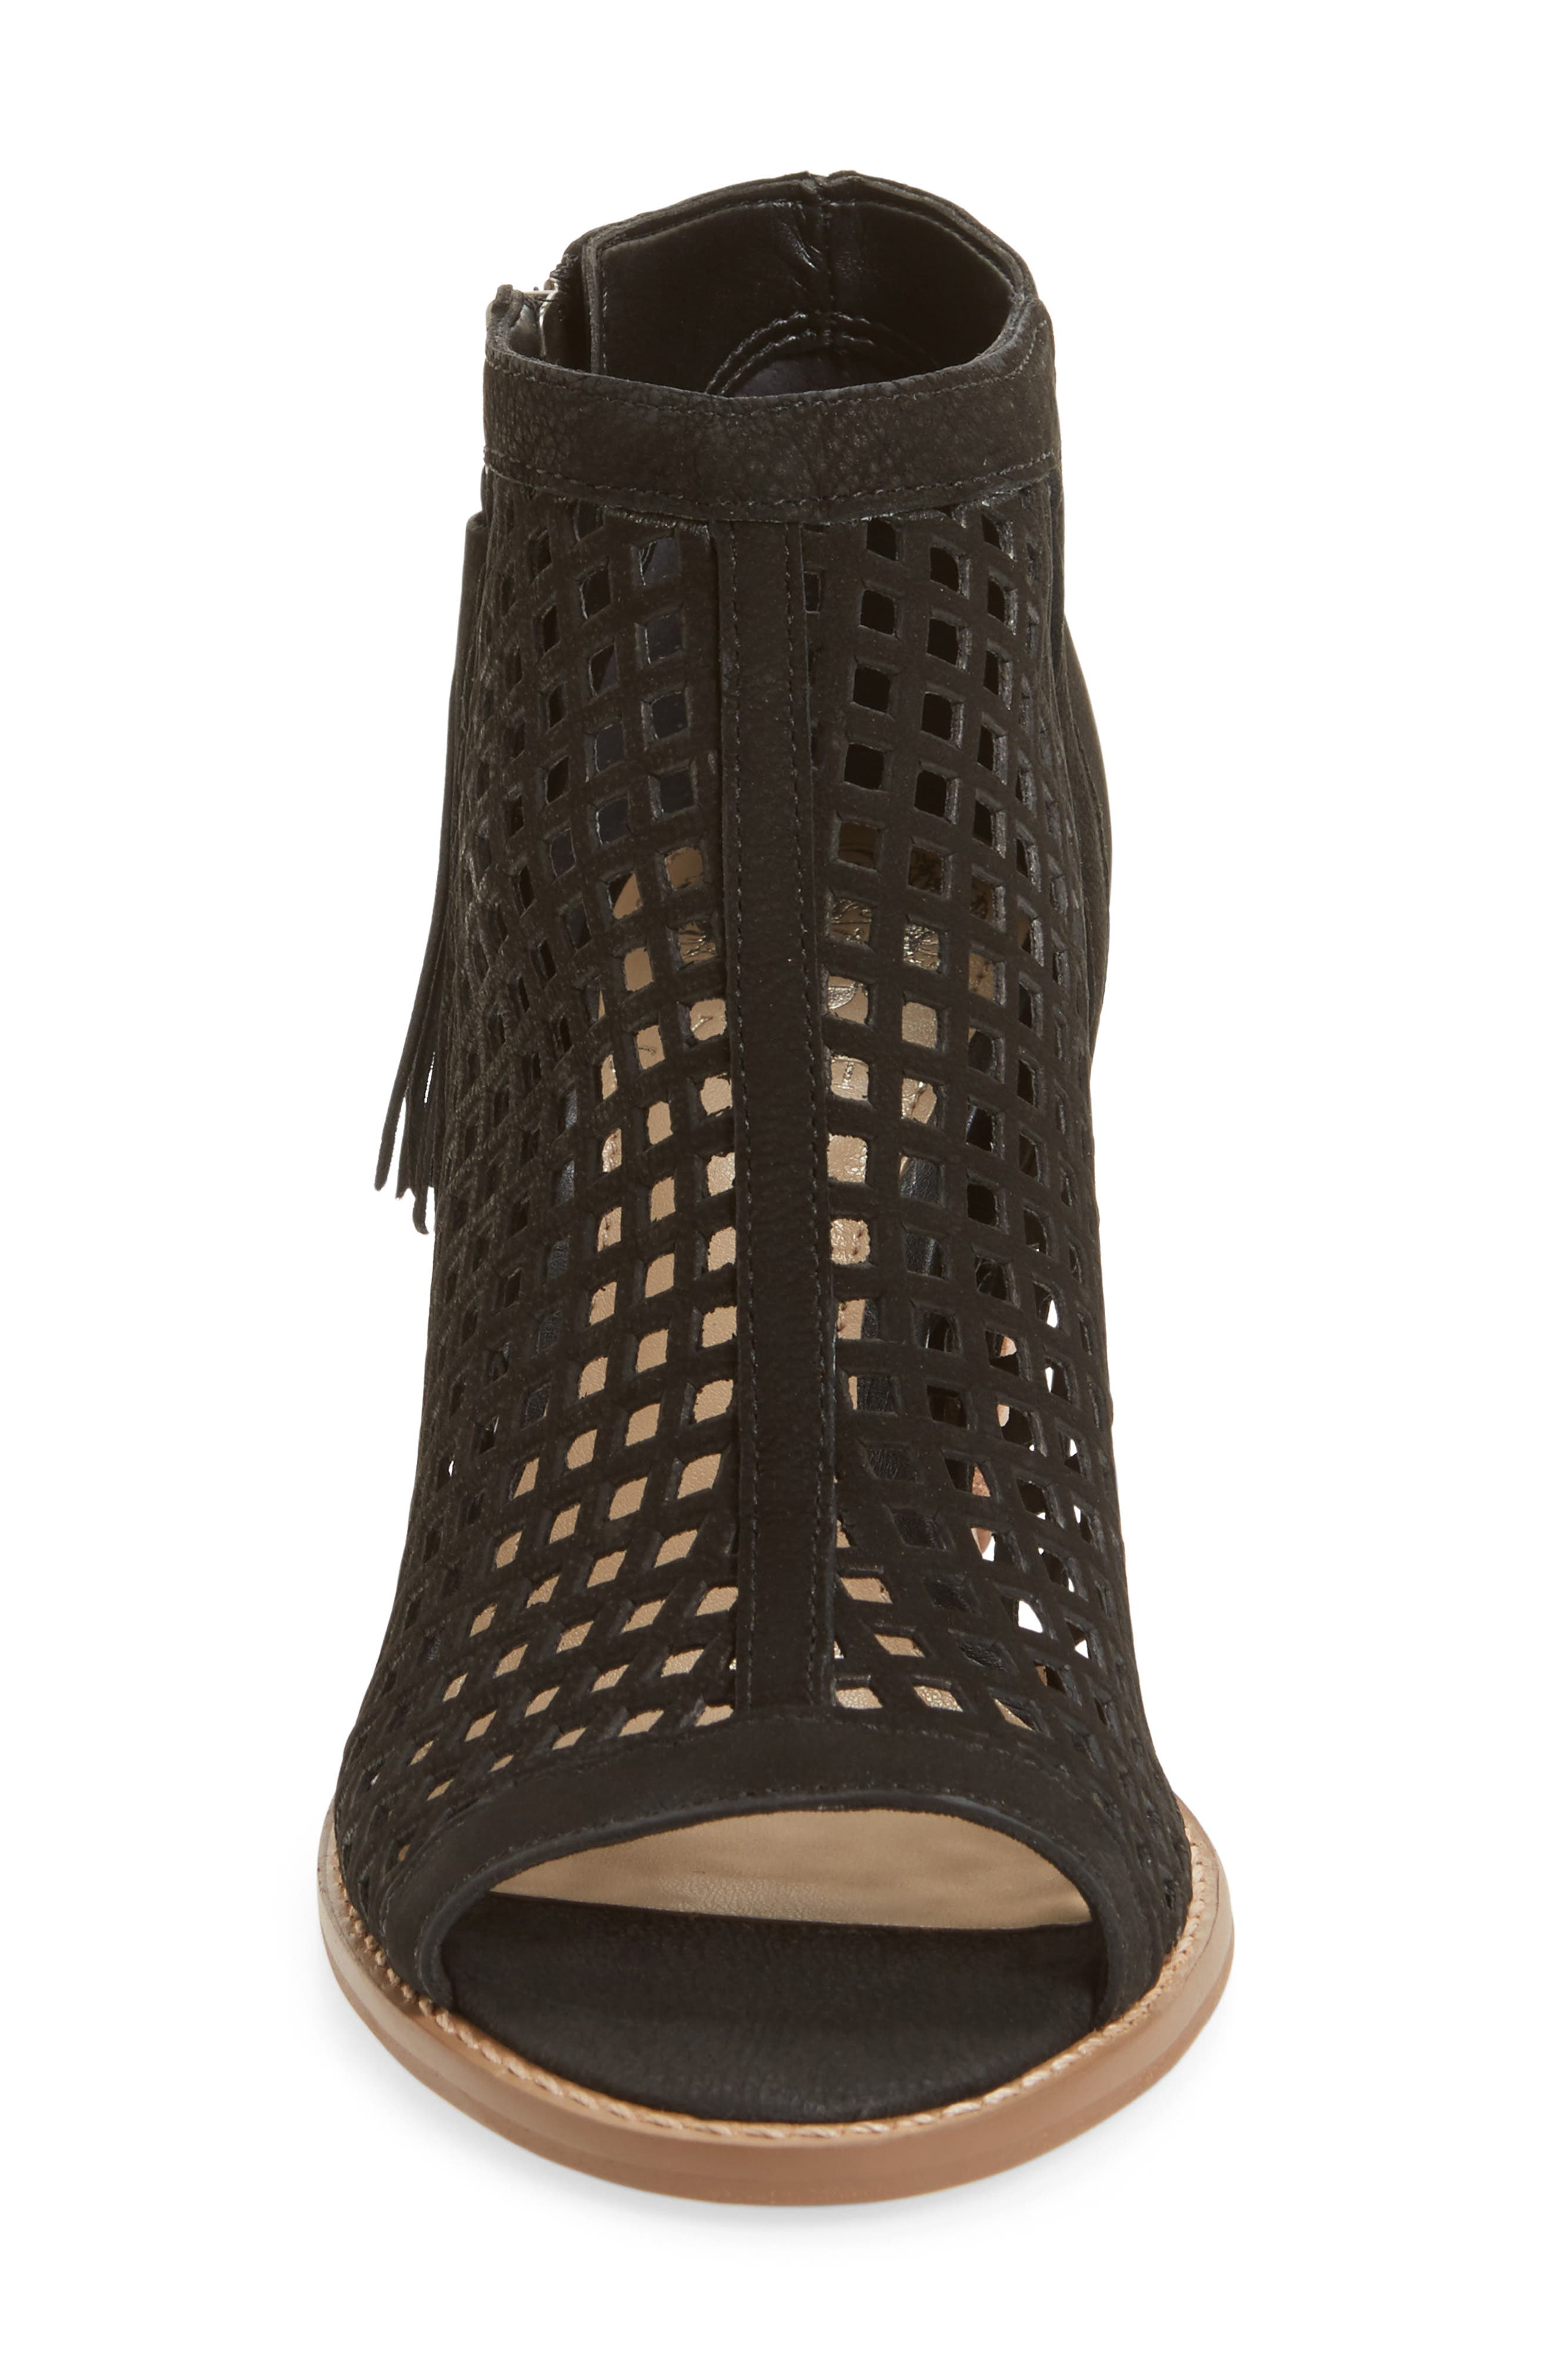 Alternate Image 3  - Vince Camuto Tresin Perforated Open-Toe Bootie (Women)